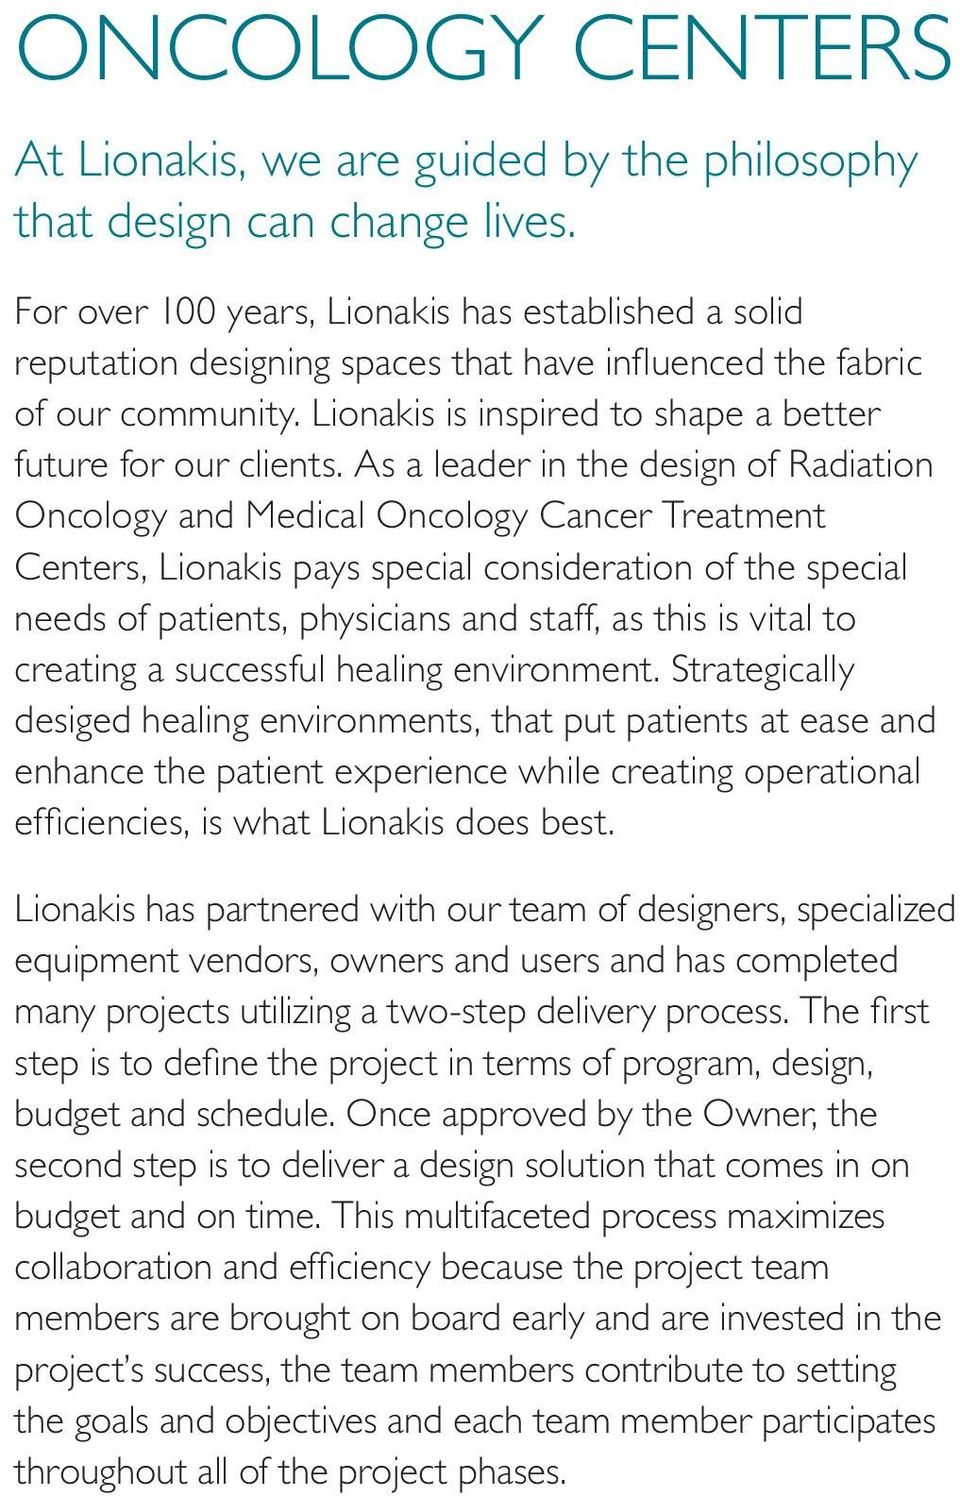 As a leader in the design of Radiation Oncology and Medical Oncology Cancer Treatment Centers, Lionakis pays special consideration of the special needs of patients, physicians and staff, as this is